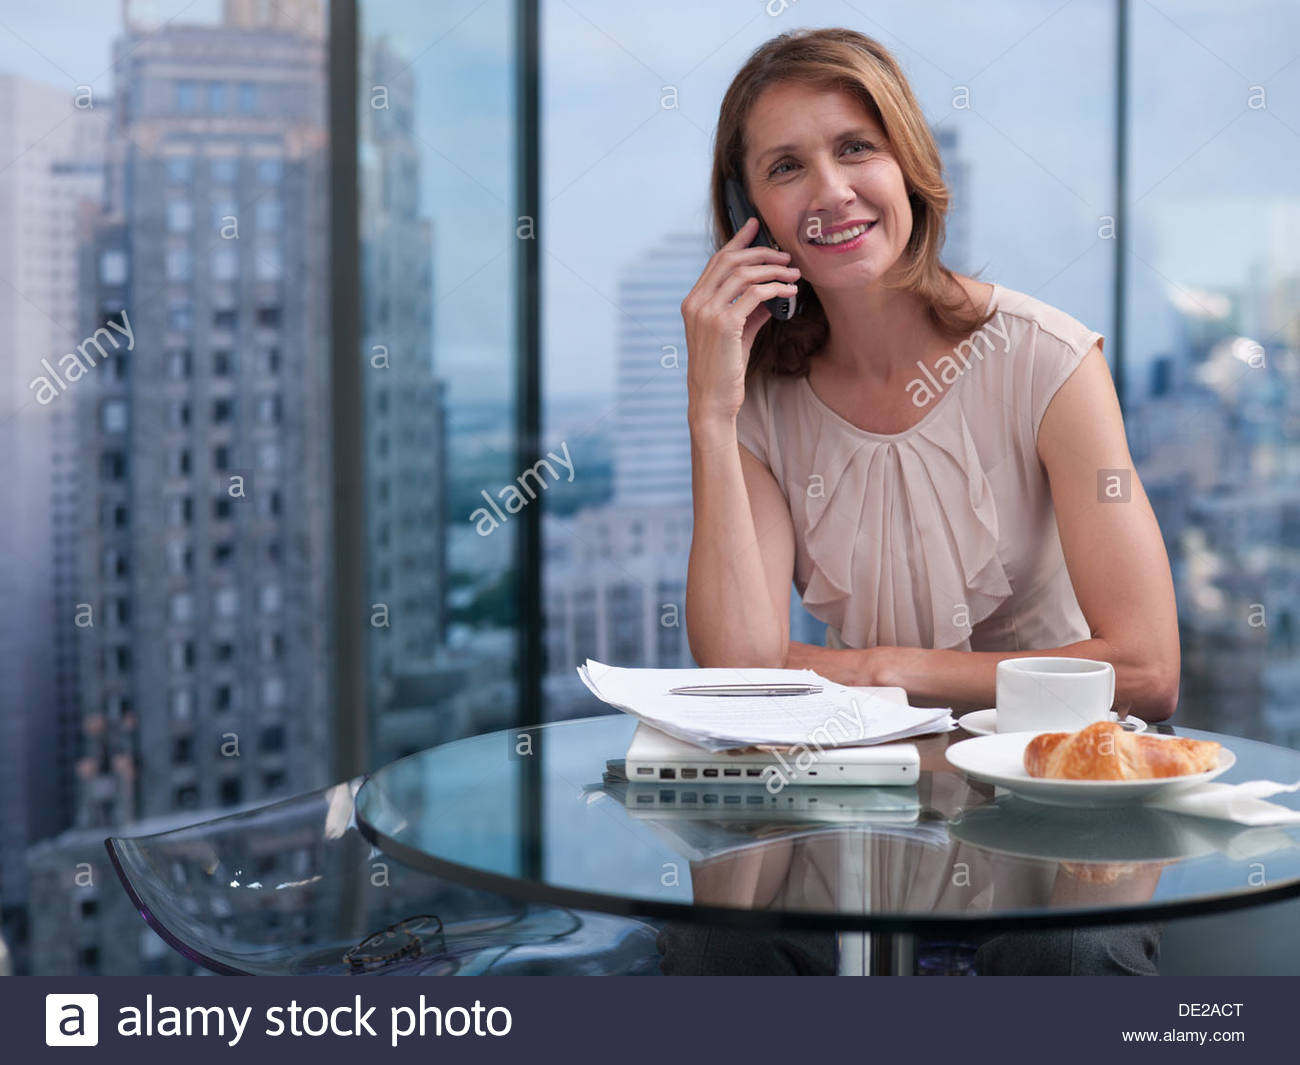 Woman talking on telephone with cityscape in background - Stock Image